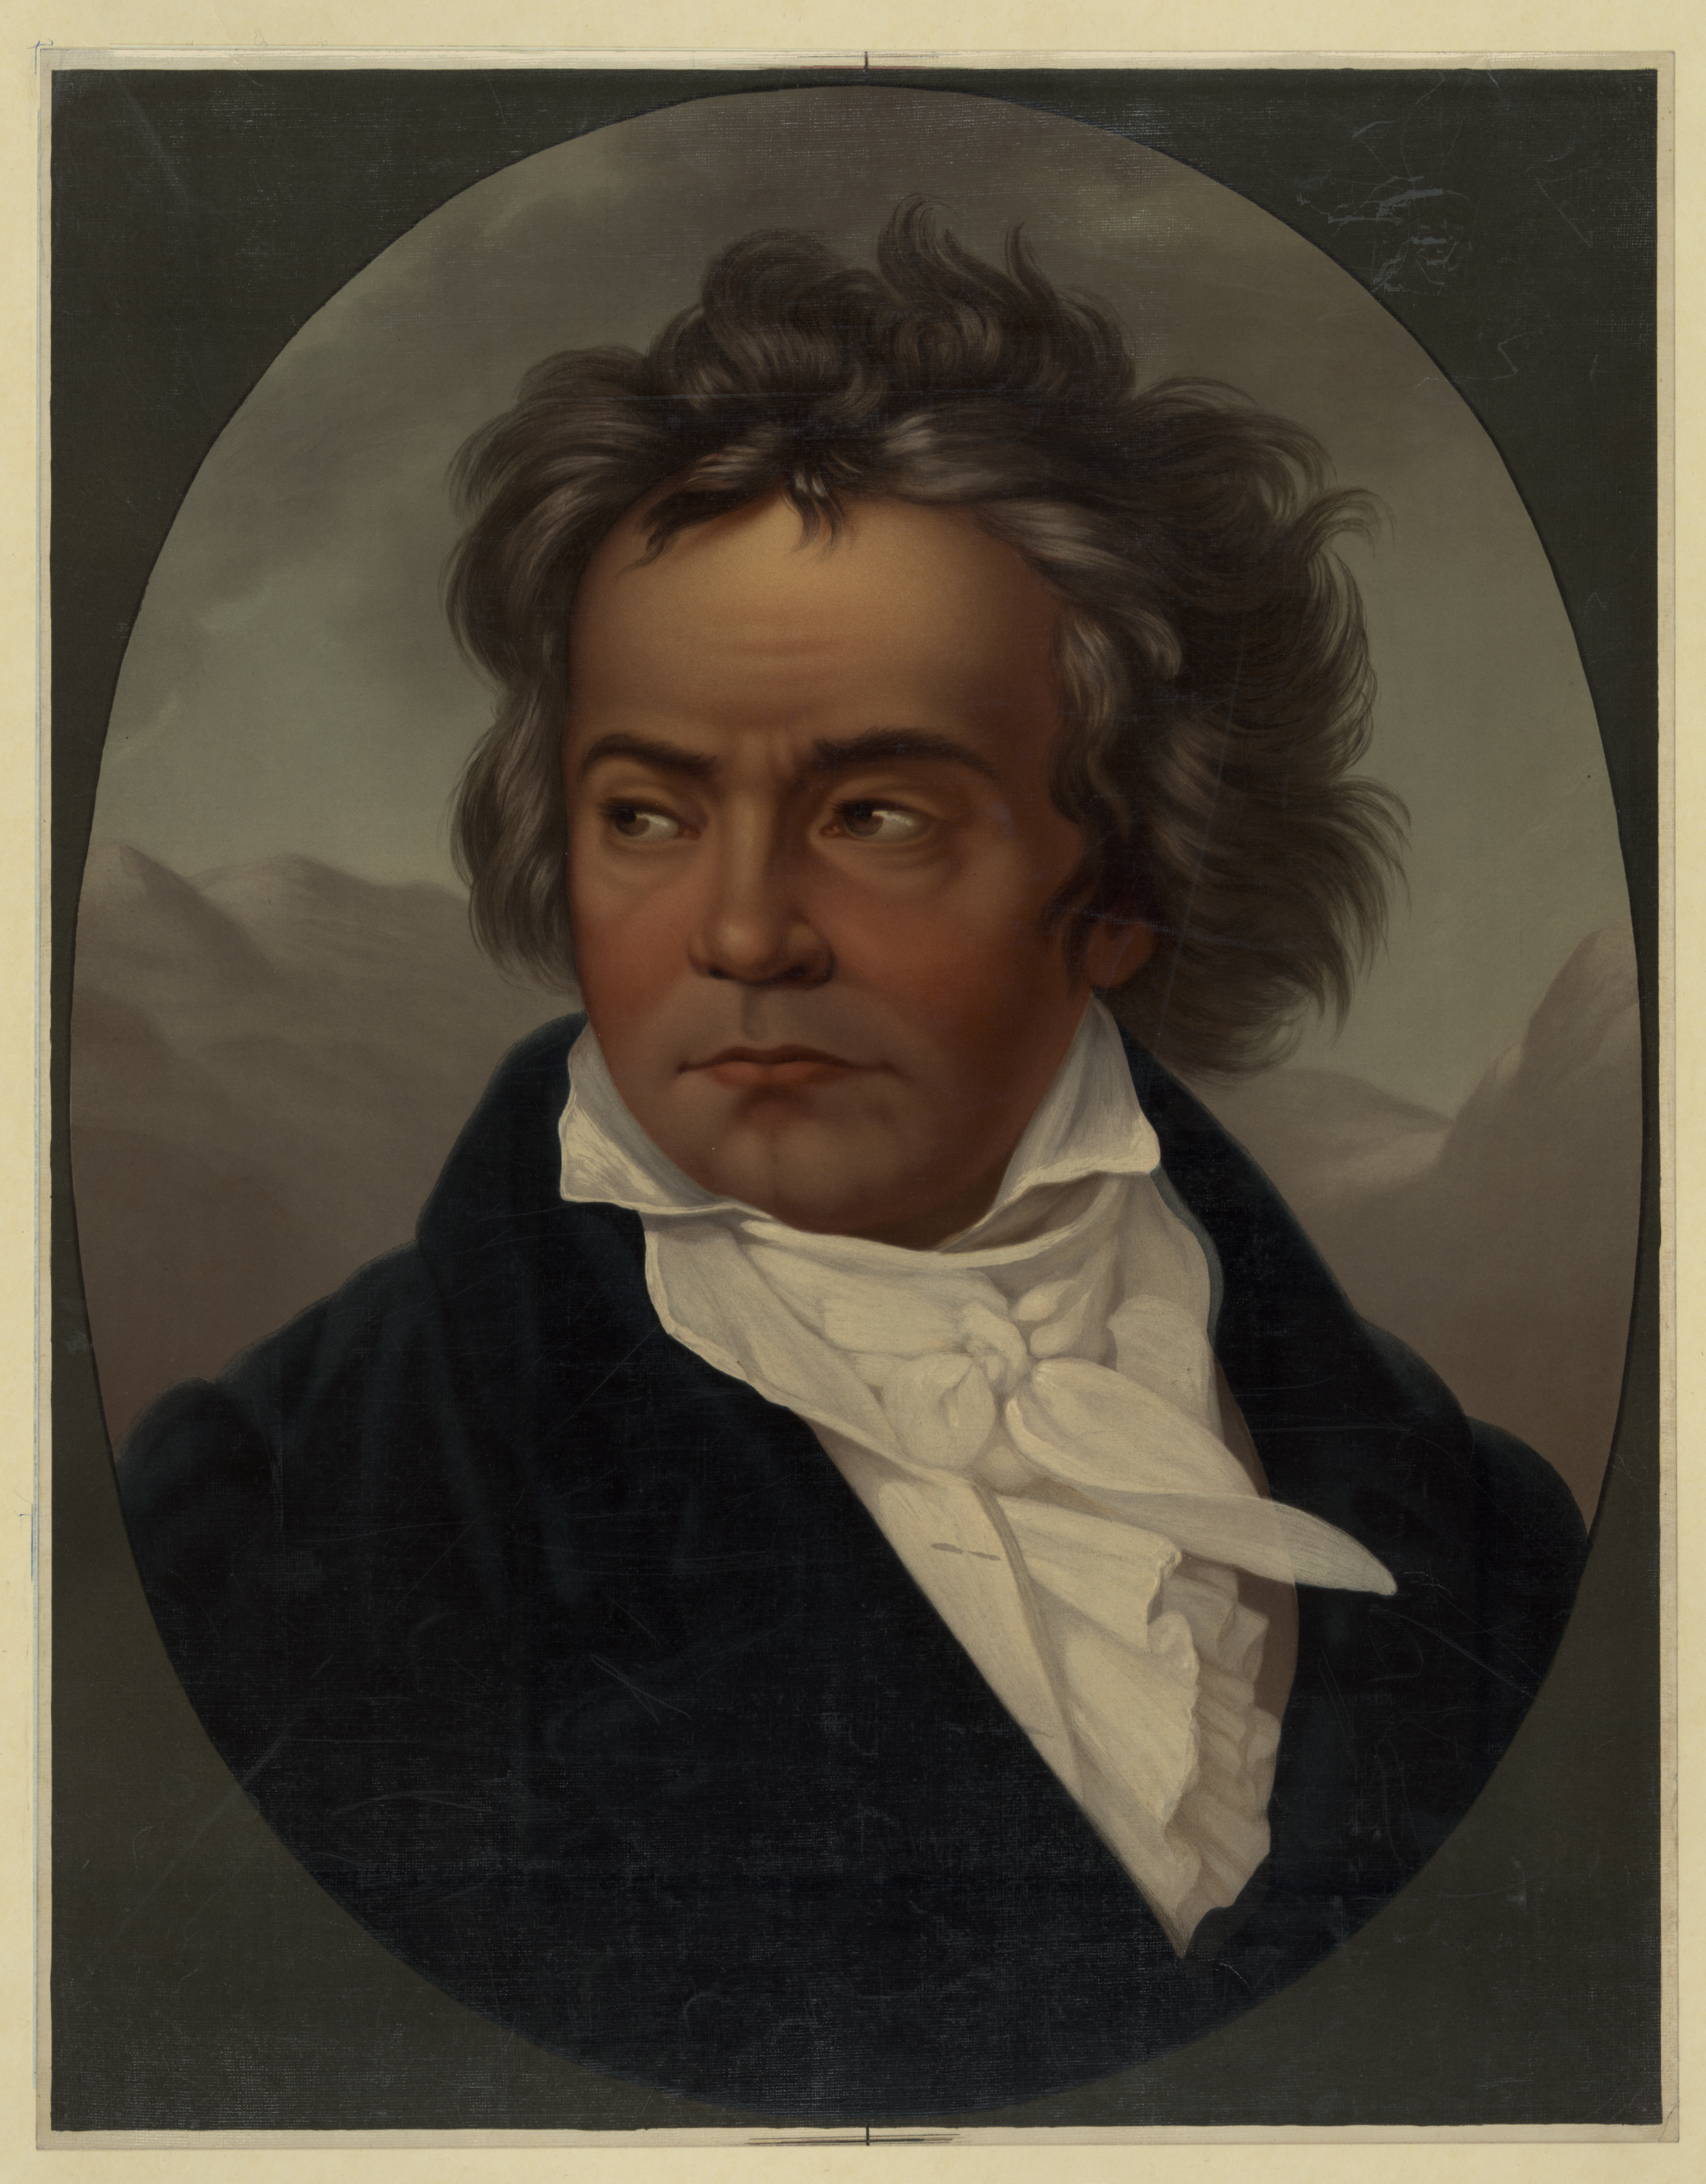 a biography of ludwig van beethoven born in bonn germany Beethoven year 2020 in 2020 germany will join the entire world in celebrating the 250th anniversary of the birth of ludwig van beethoven in a unique cooperative venture, the federal republic of germany, the state of north rhine-westphalia, the rhine-sieg district and the city of bonn have joined forces to set up the beethoven jubiläums.